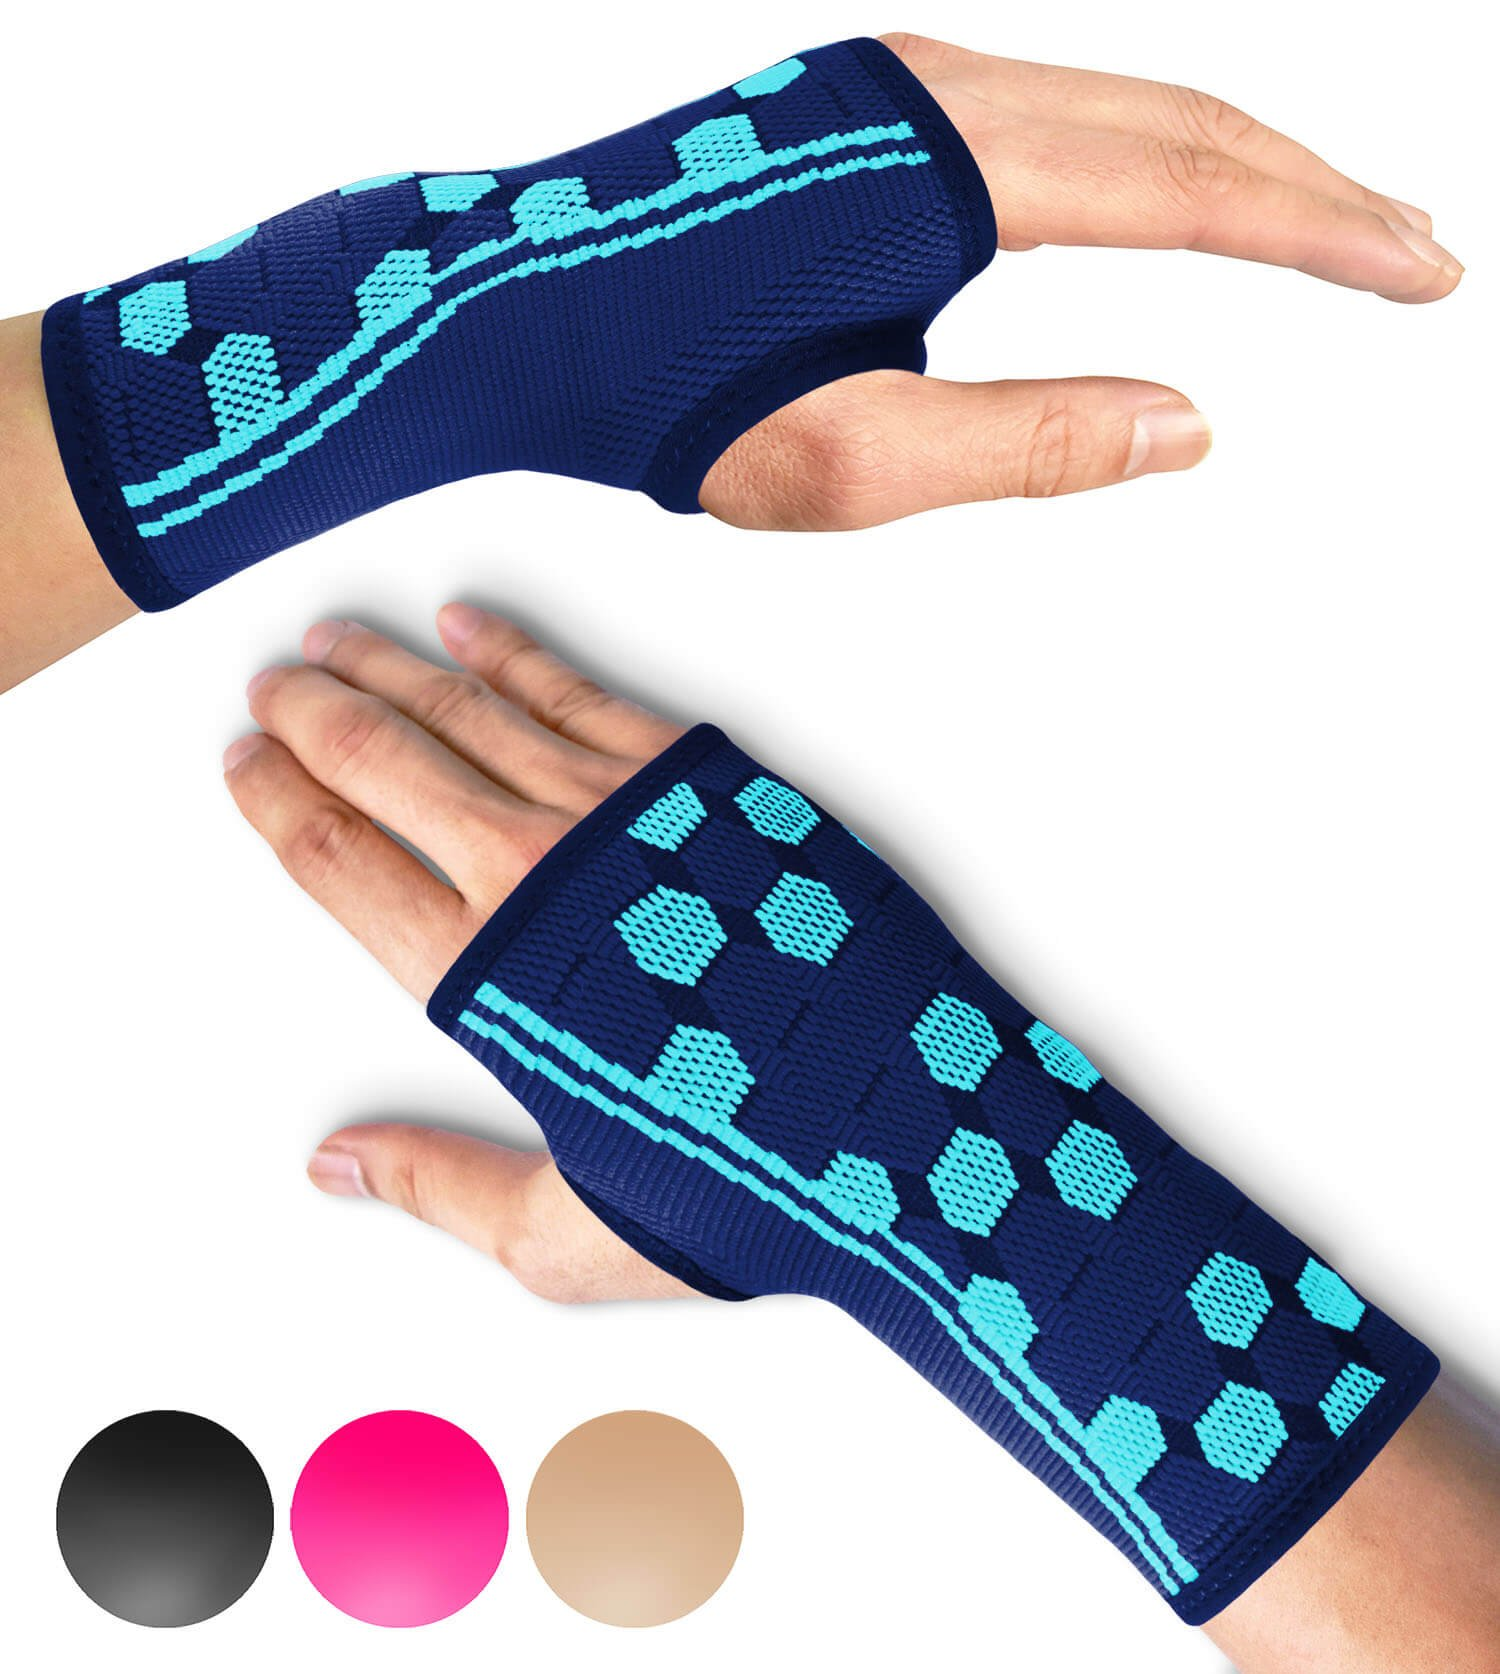 Sparthos Wrist Support Sleeves (Pair) - Medical Compression for Carpal Tunnel and Wrist Pain Relief - Wrist Brace for Men and Women (X-Large, Cobalt Blue) by Sparthos